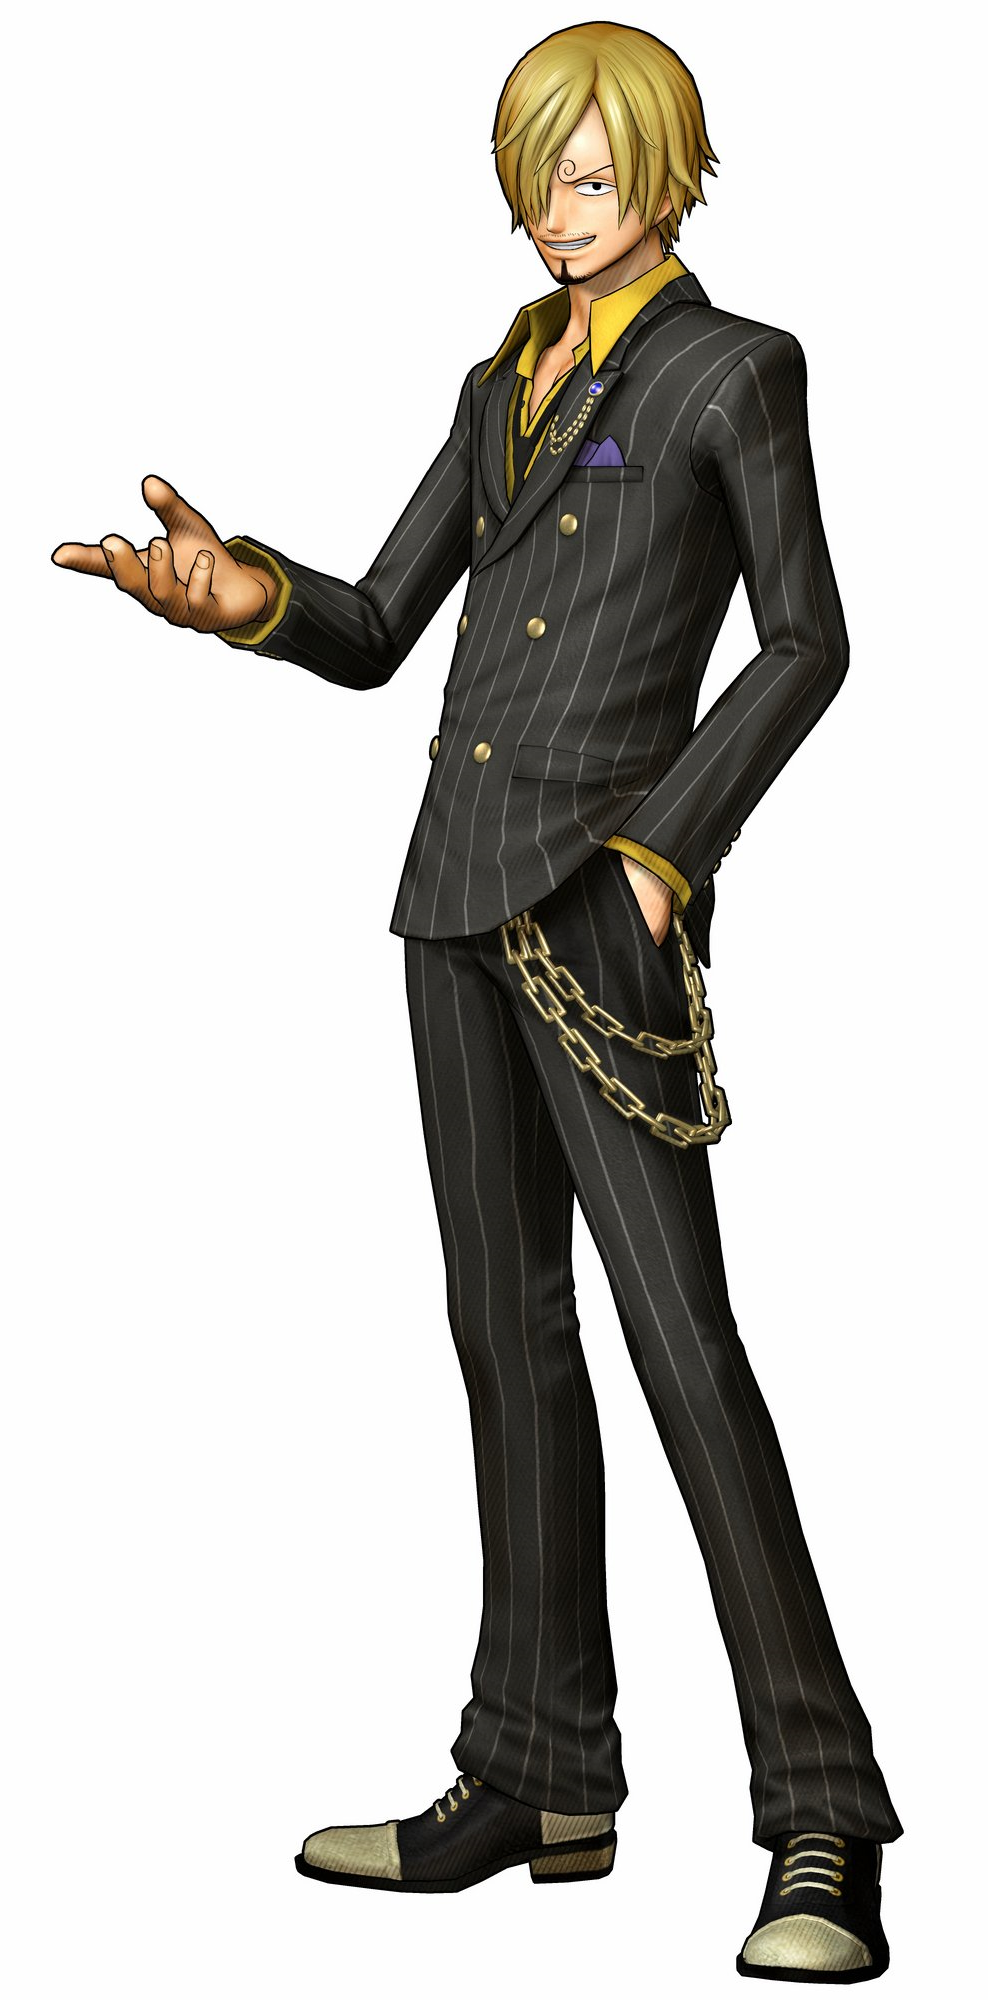 Fichier:Sanji Pirate Warriors 3.png | One Piece ... Zoro Roronoa New World